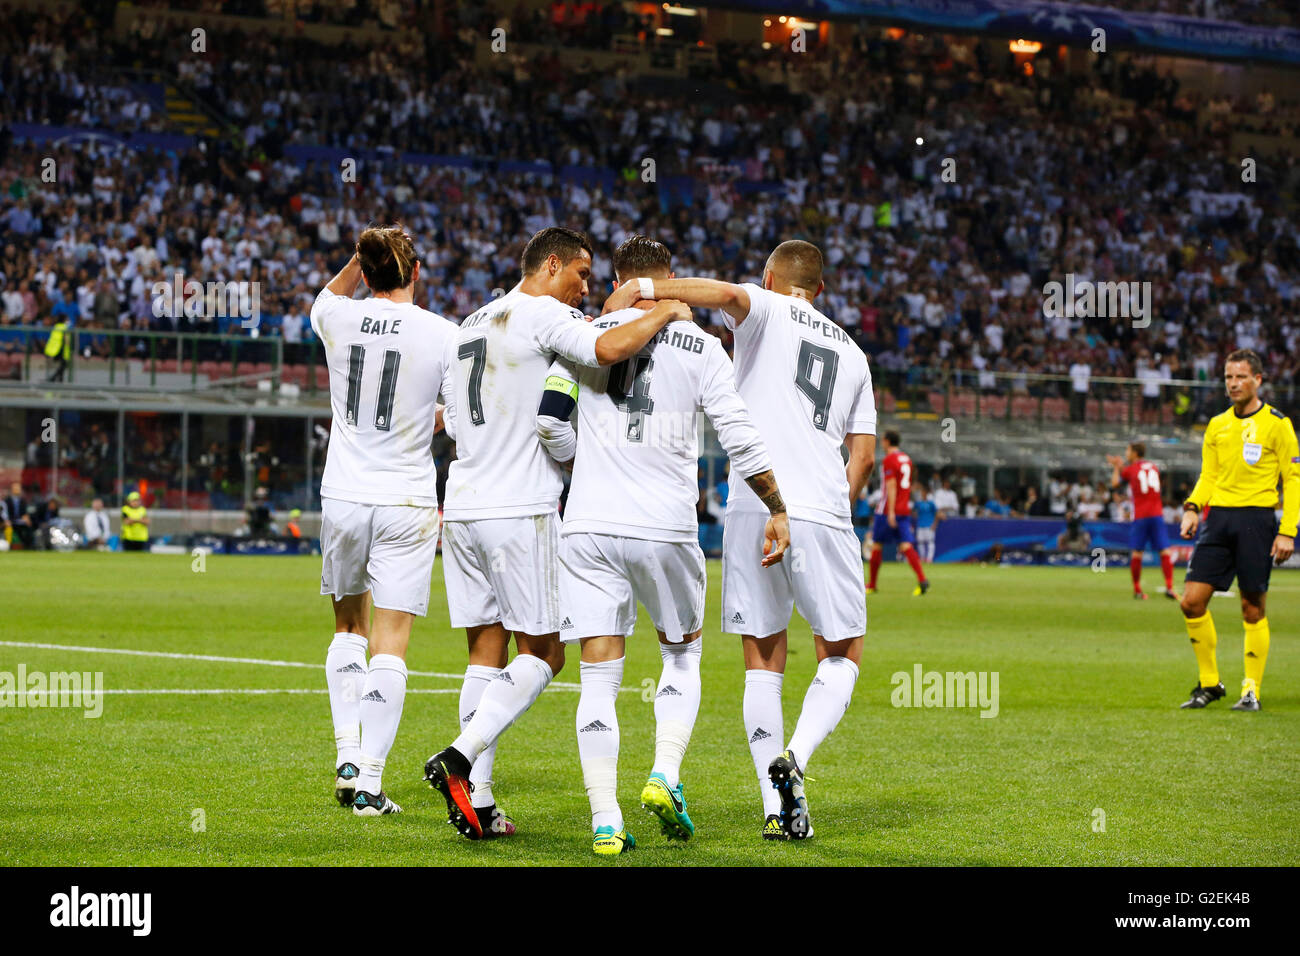 real madrid team group real may 28 2016 football soccer stock photo royalty free image. Black Bedroom Furniture Sets. Home Design Ideas